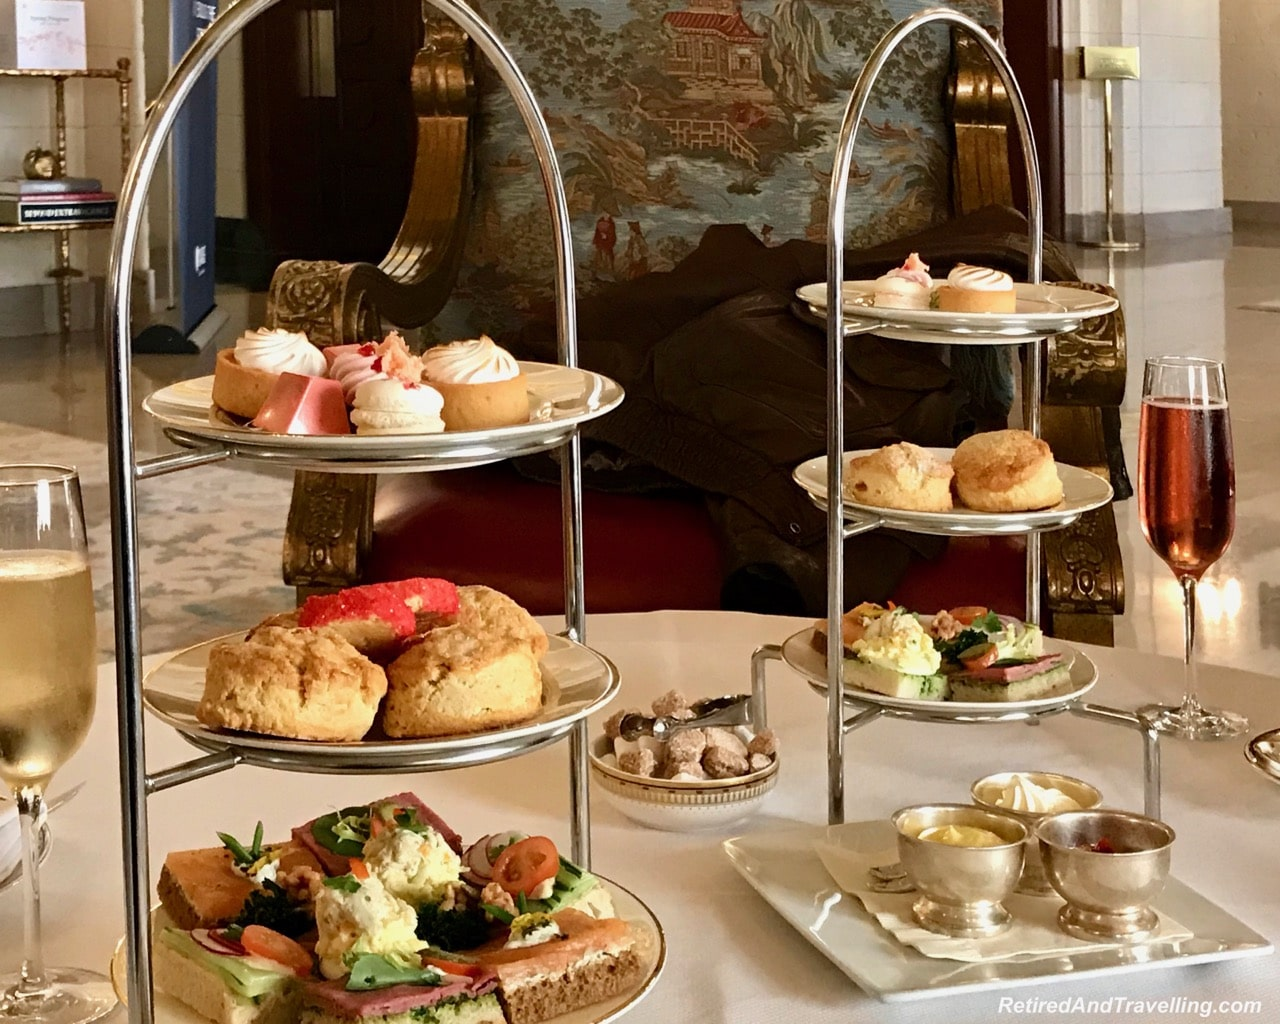 St Regis Washington Afternoon Tea - We Ate And Drank Our Way Through 2018.jpg